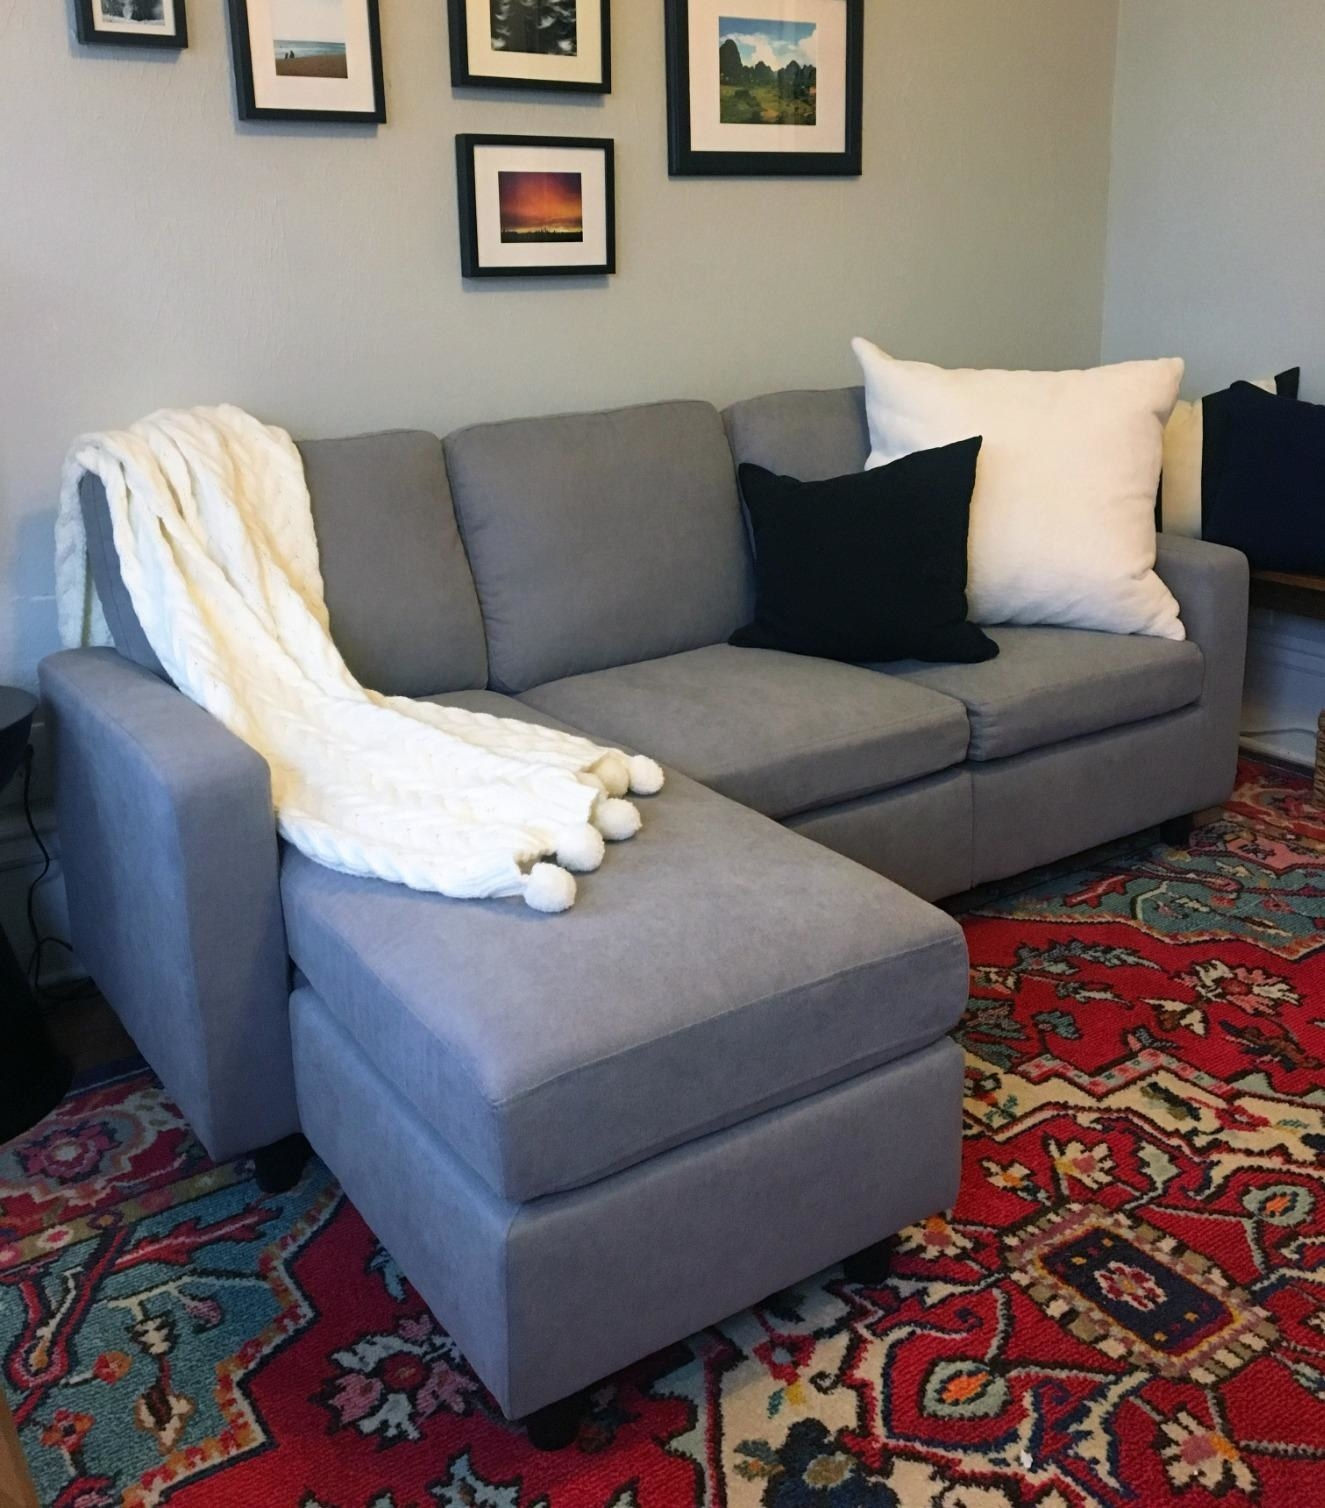 A reviewer's photo of the grey couch with the ottoman placed on the right